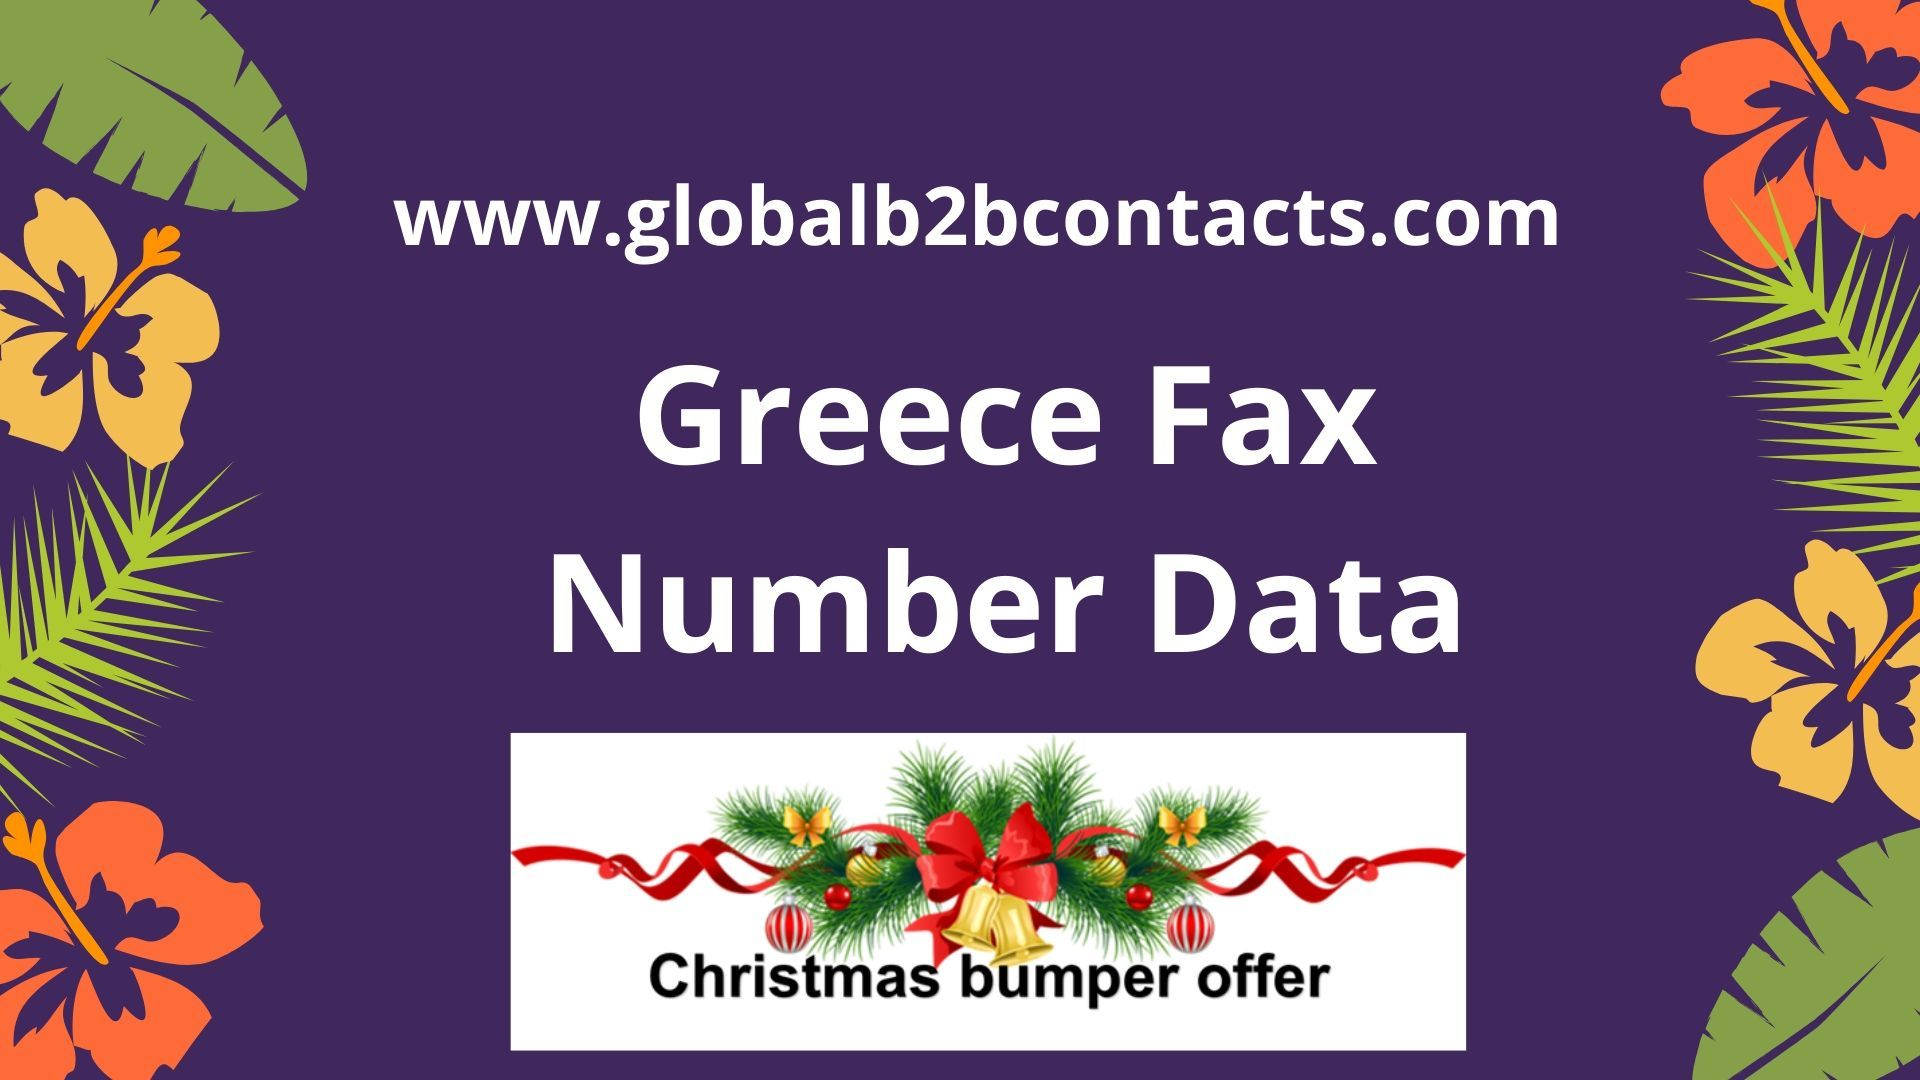 Greece Fax Number Data Fax number, Data, Fax